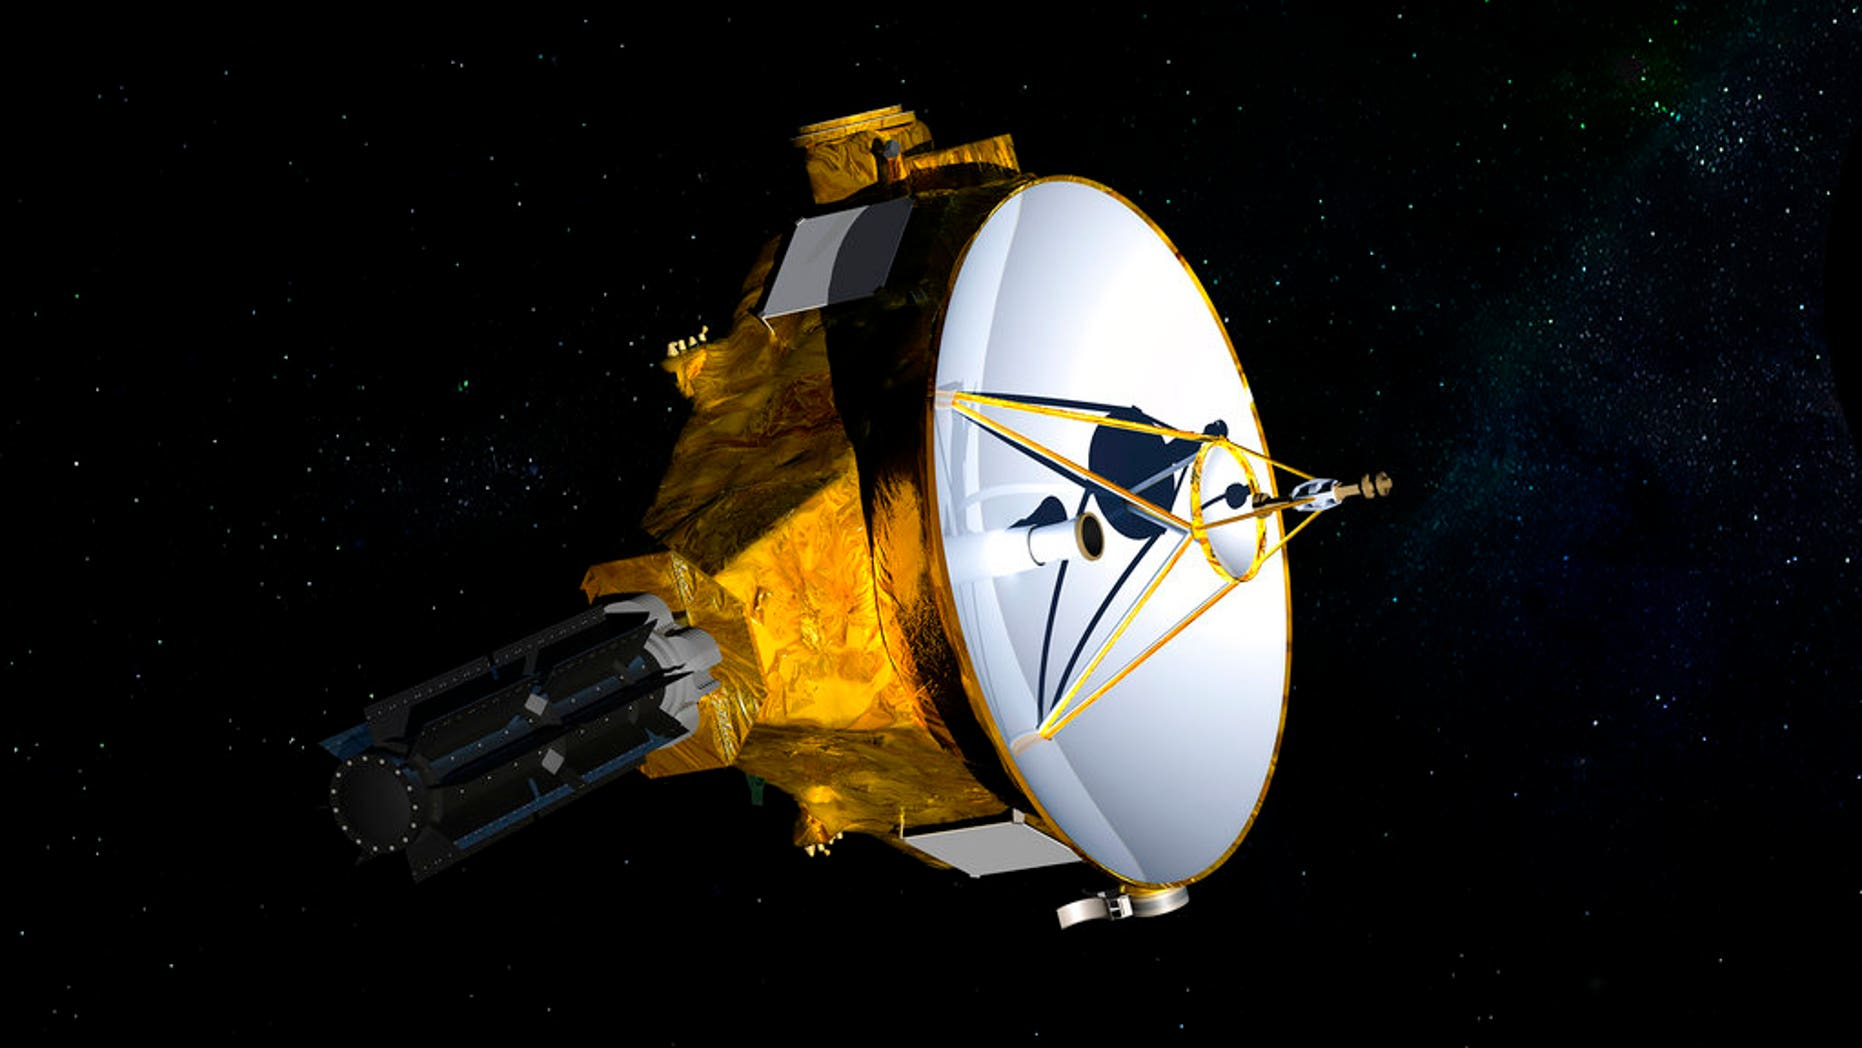 NASA spacecraft survives risky encounter with faraway dark world